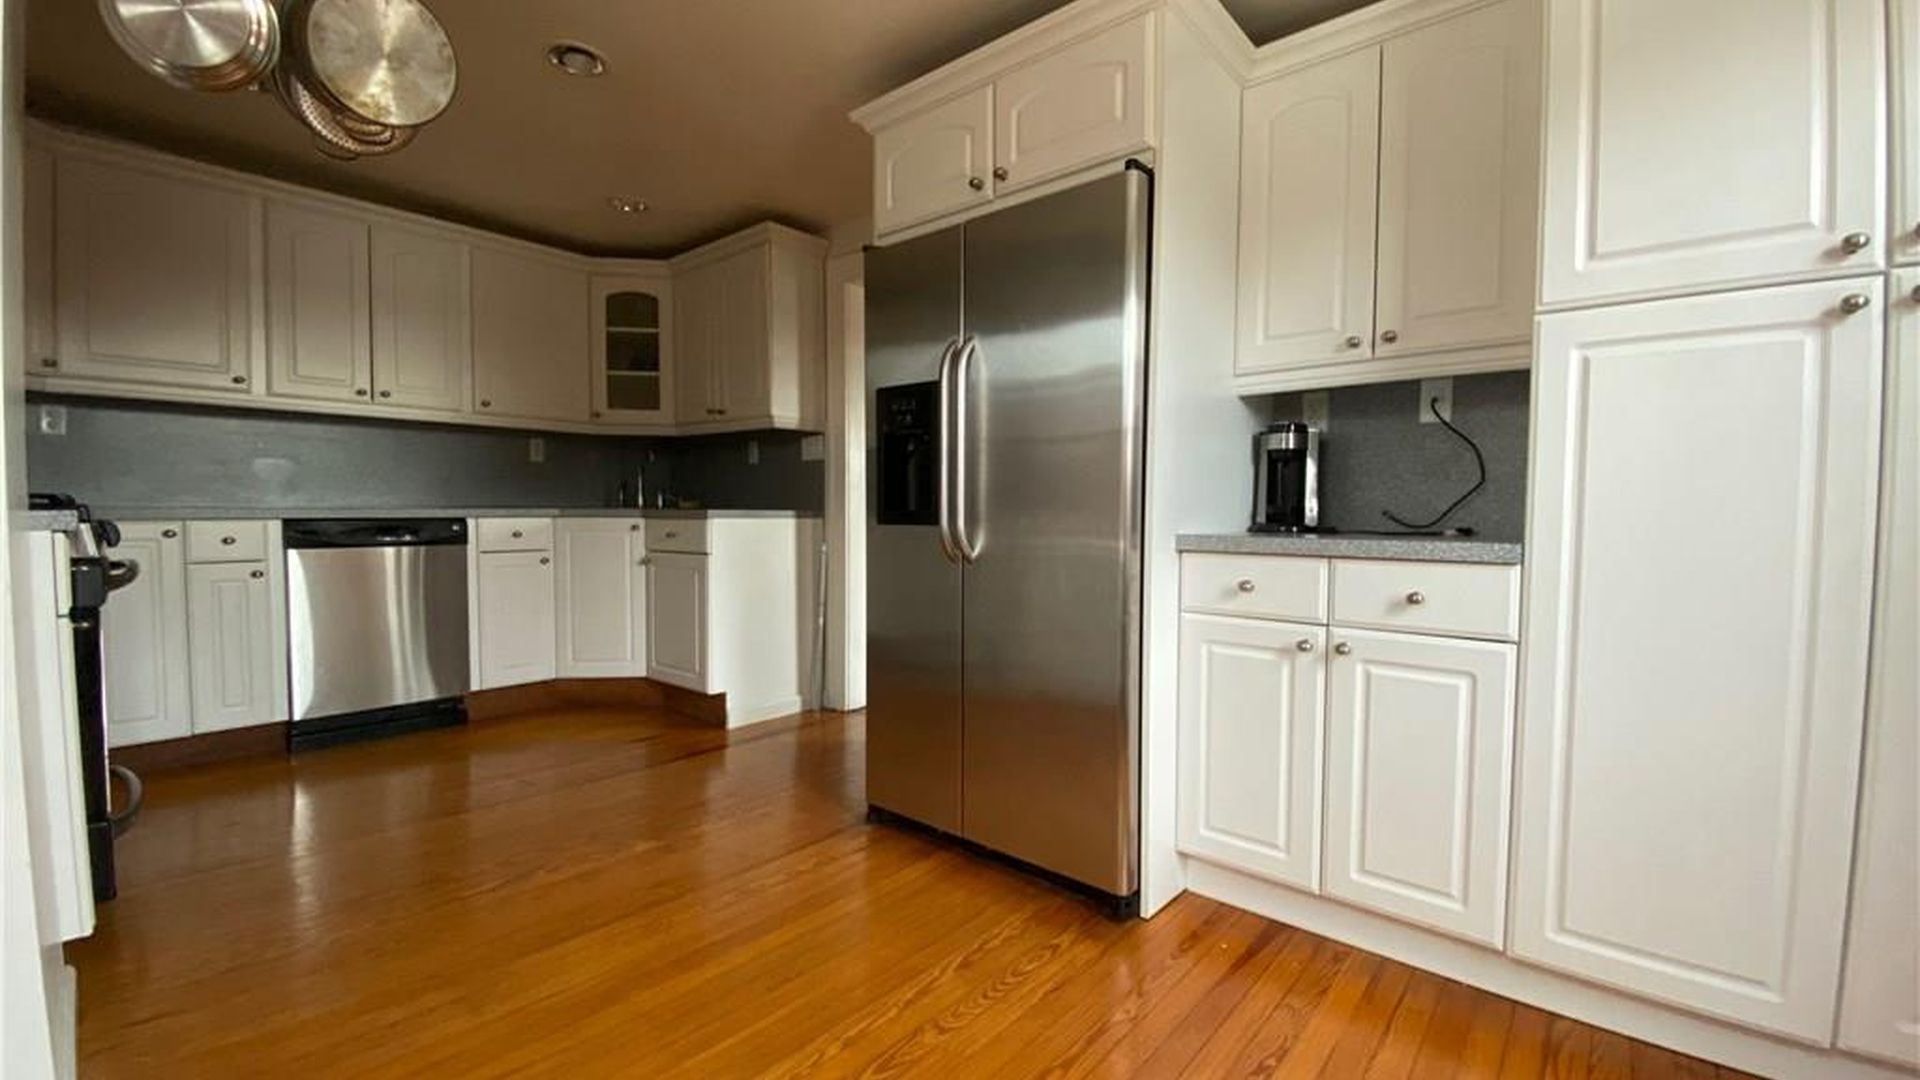 wholesale kitchen cabinets perth amboy Cheap Apartments For Rent In Perth Amboy NJ Zillow